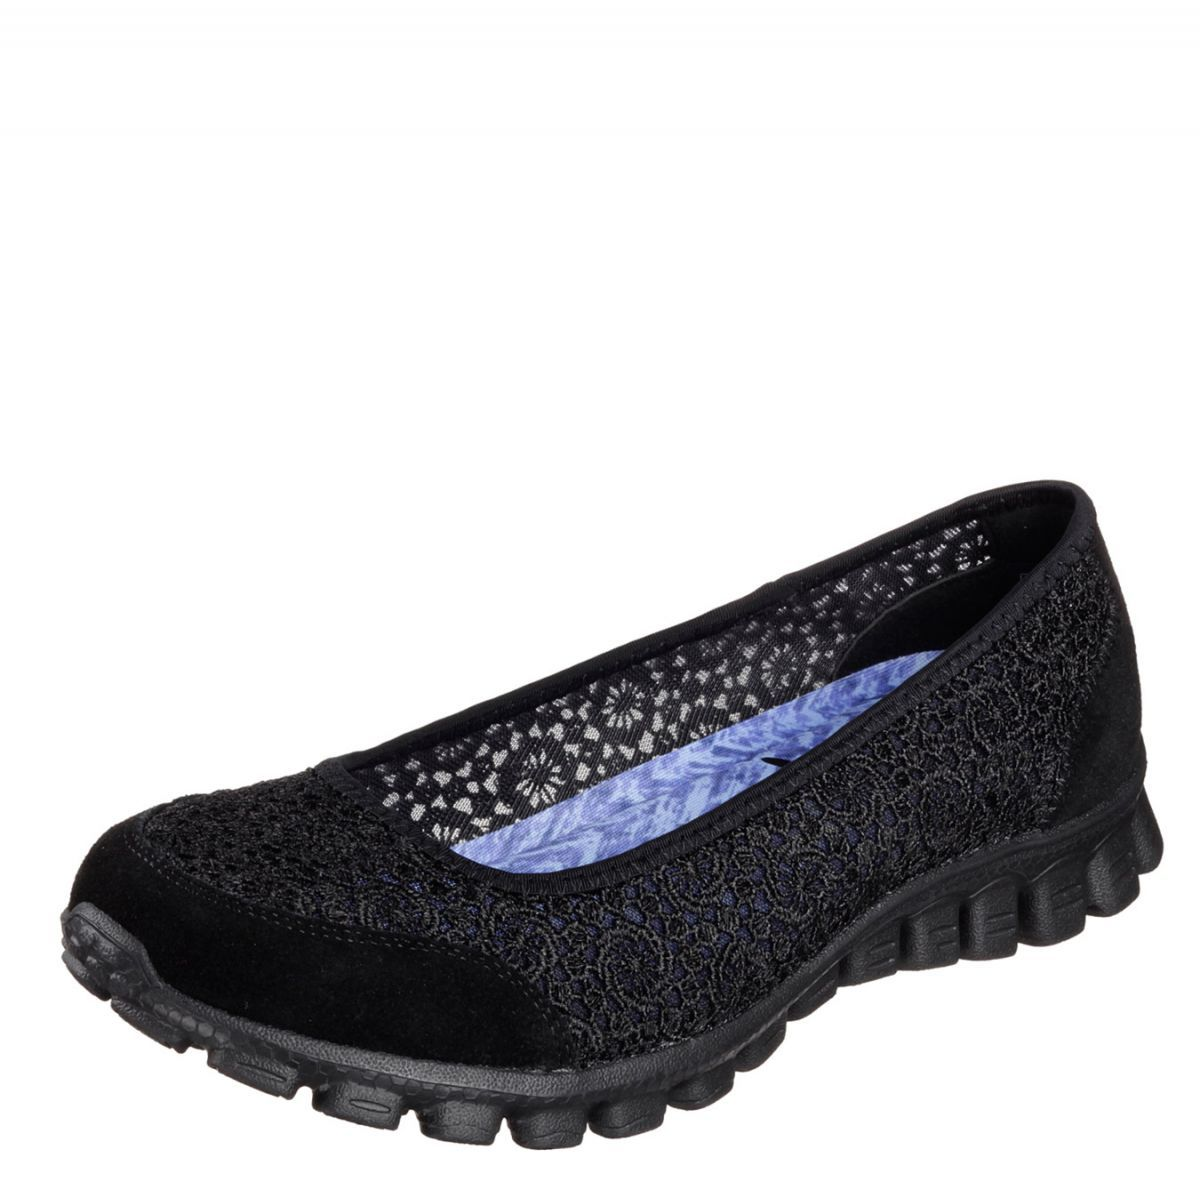 Skechers EZ Flex 2 Flighty Black Memory Foam Flat Ballet ...